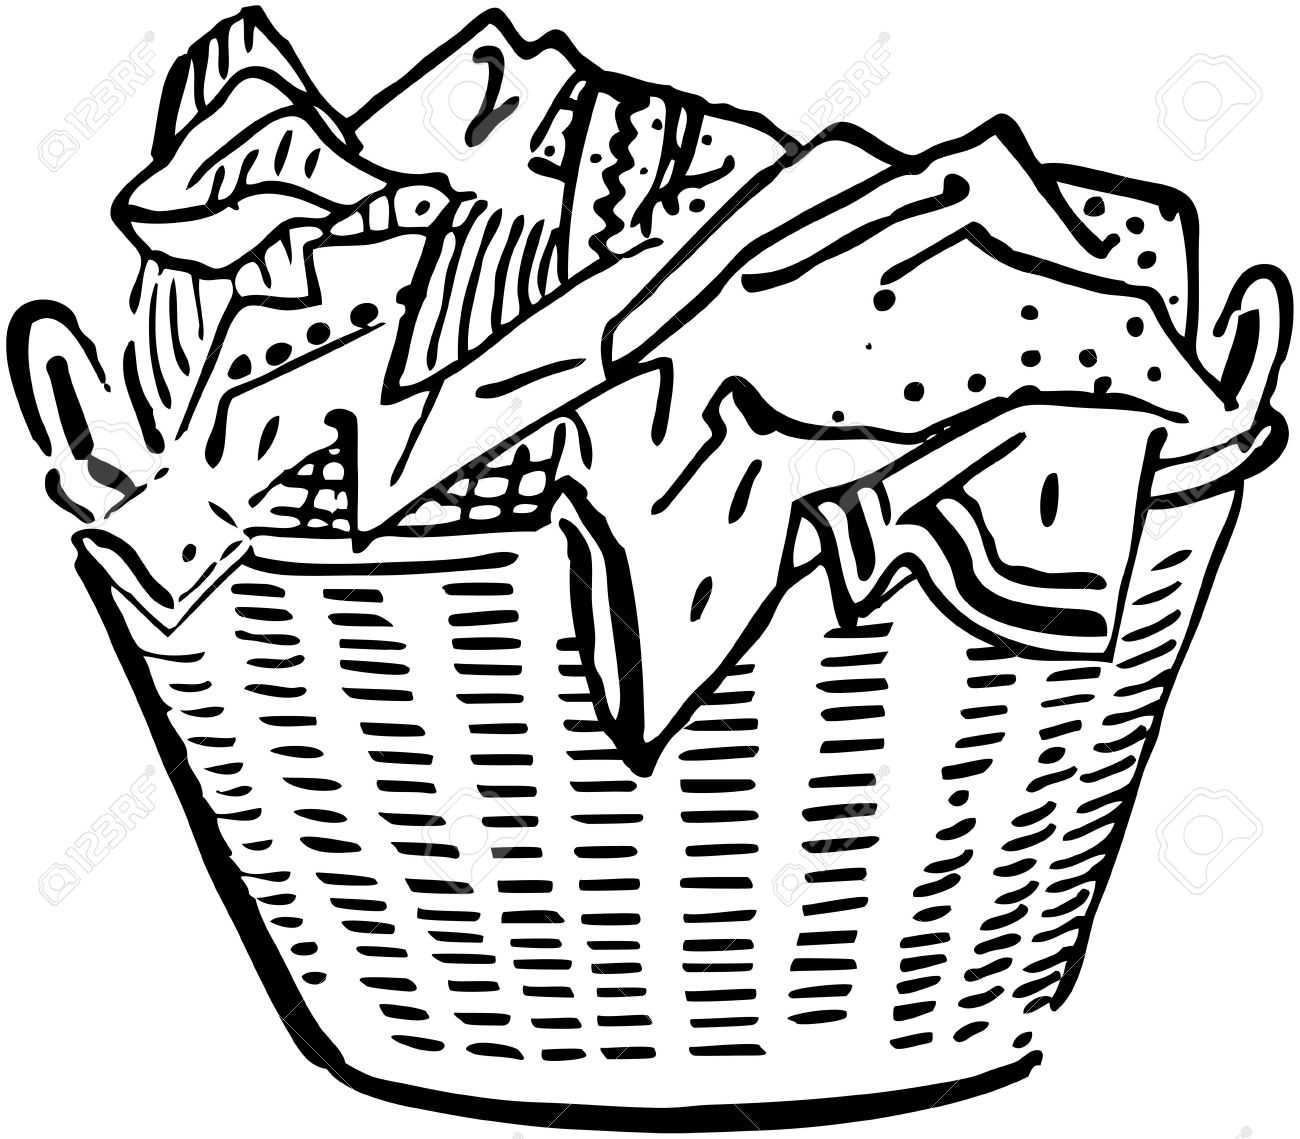 1300x1139 Laundry Basket Royalty Free Cliparts, Vectors, And Stock